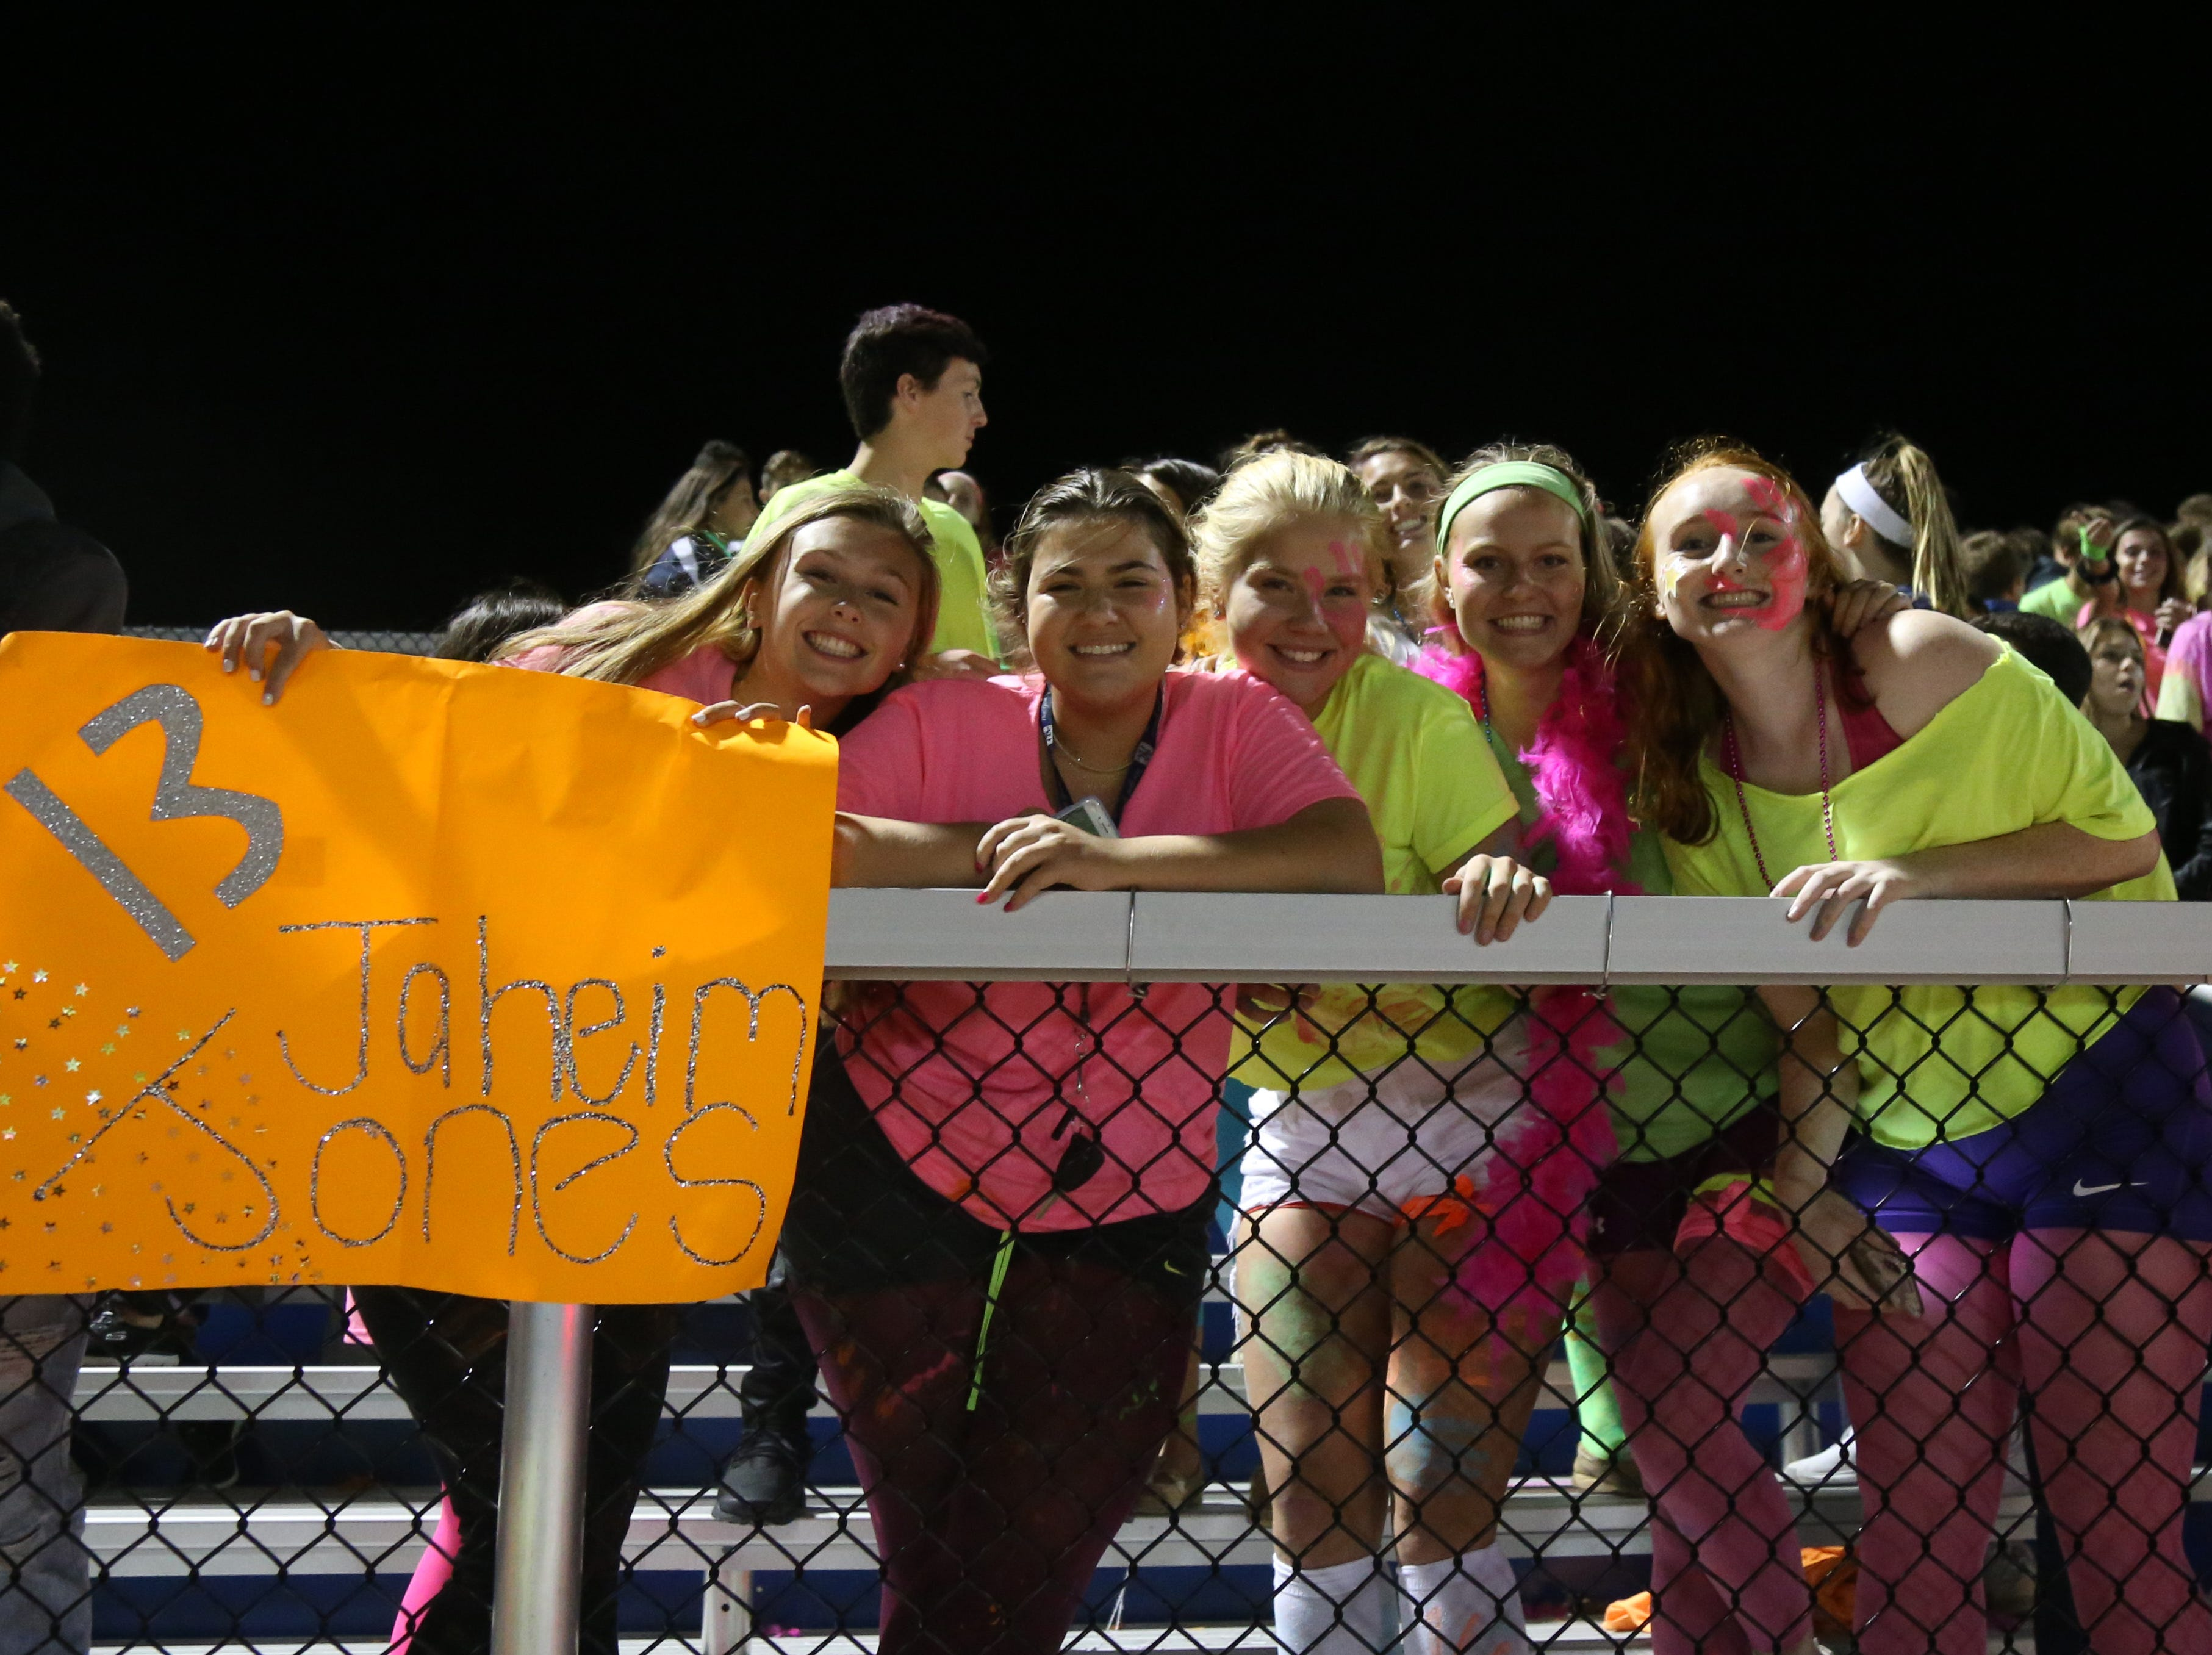 Members of the Our Lady of Lourdes girls soccer team show support for the football team.